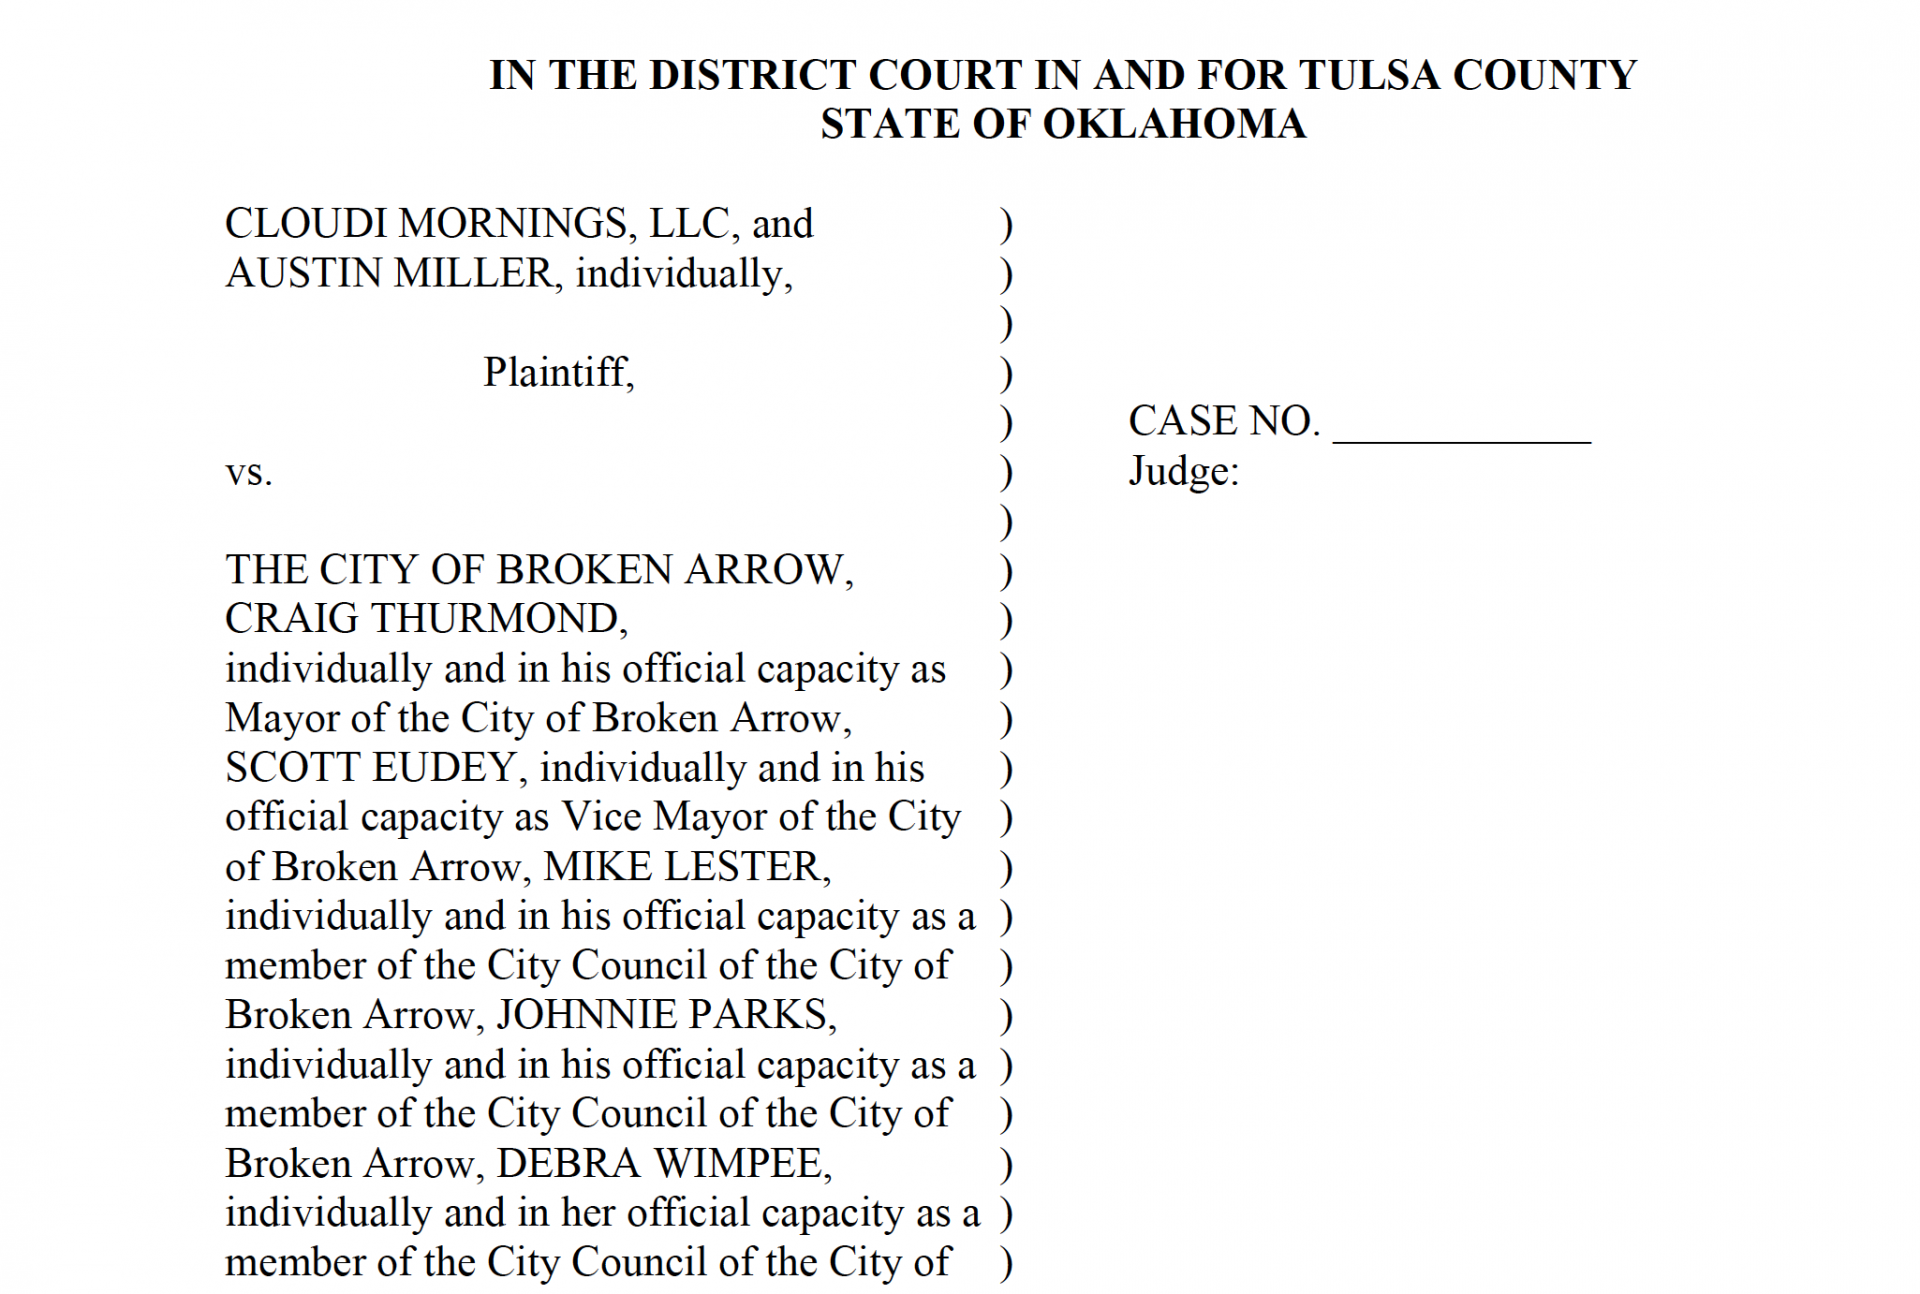 Screenshot of an application for emergency injunction filed against the City of Broken Arrow